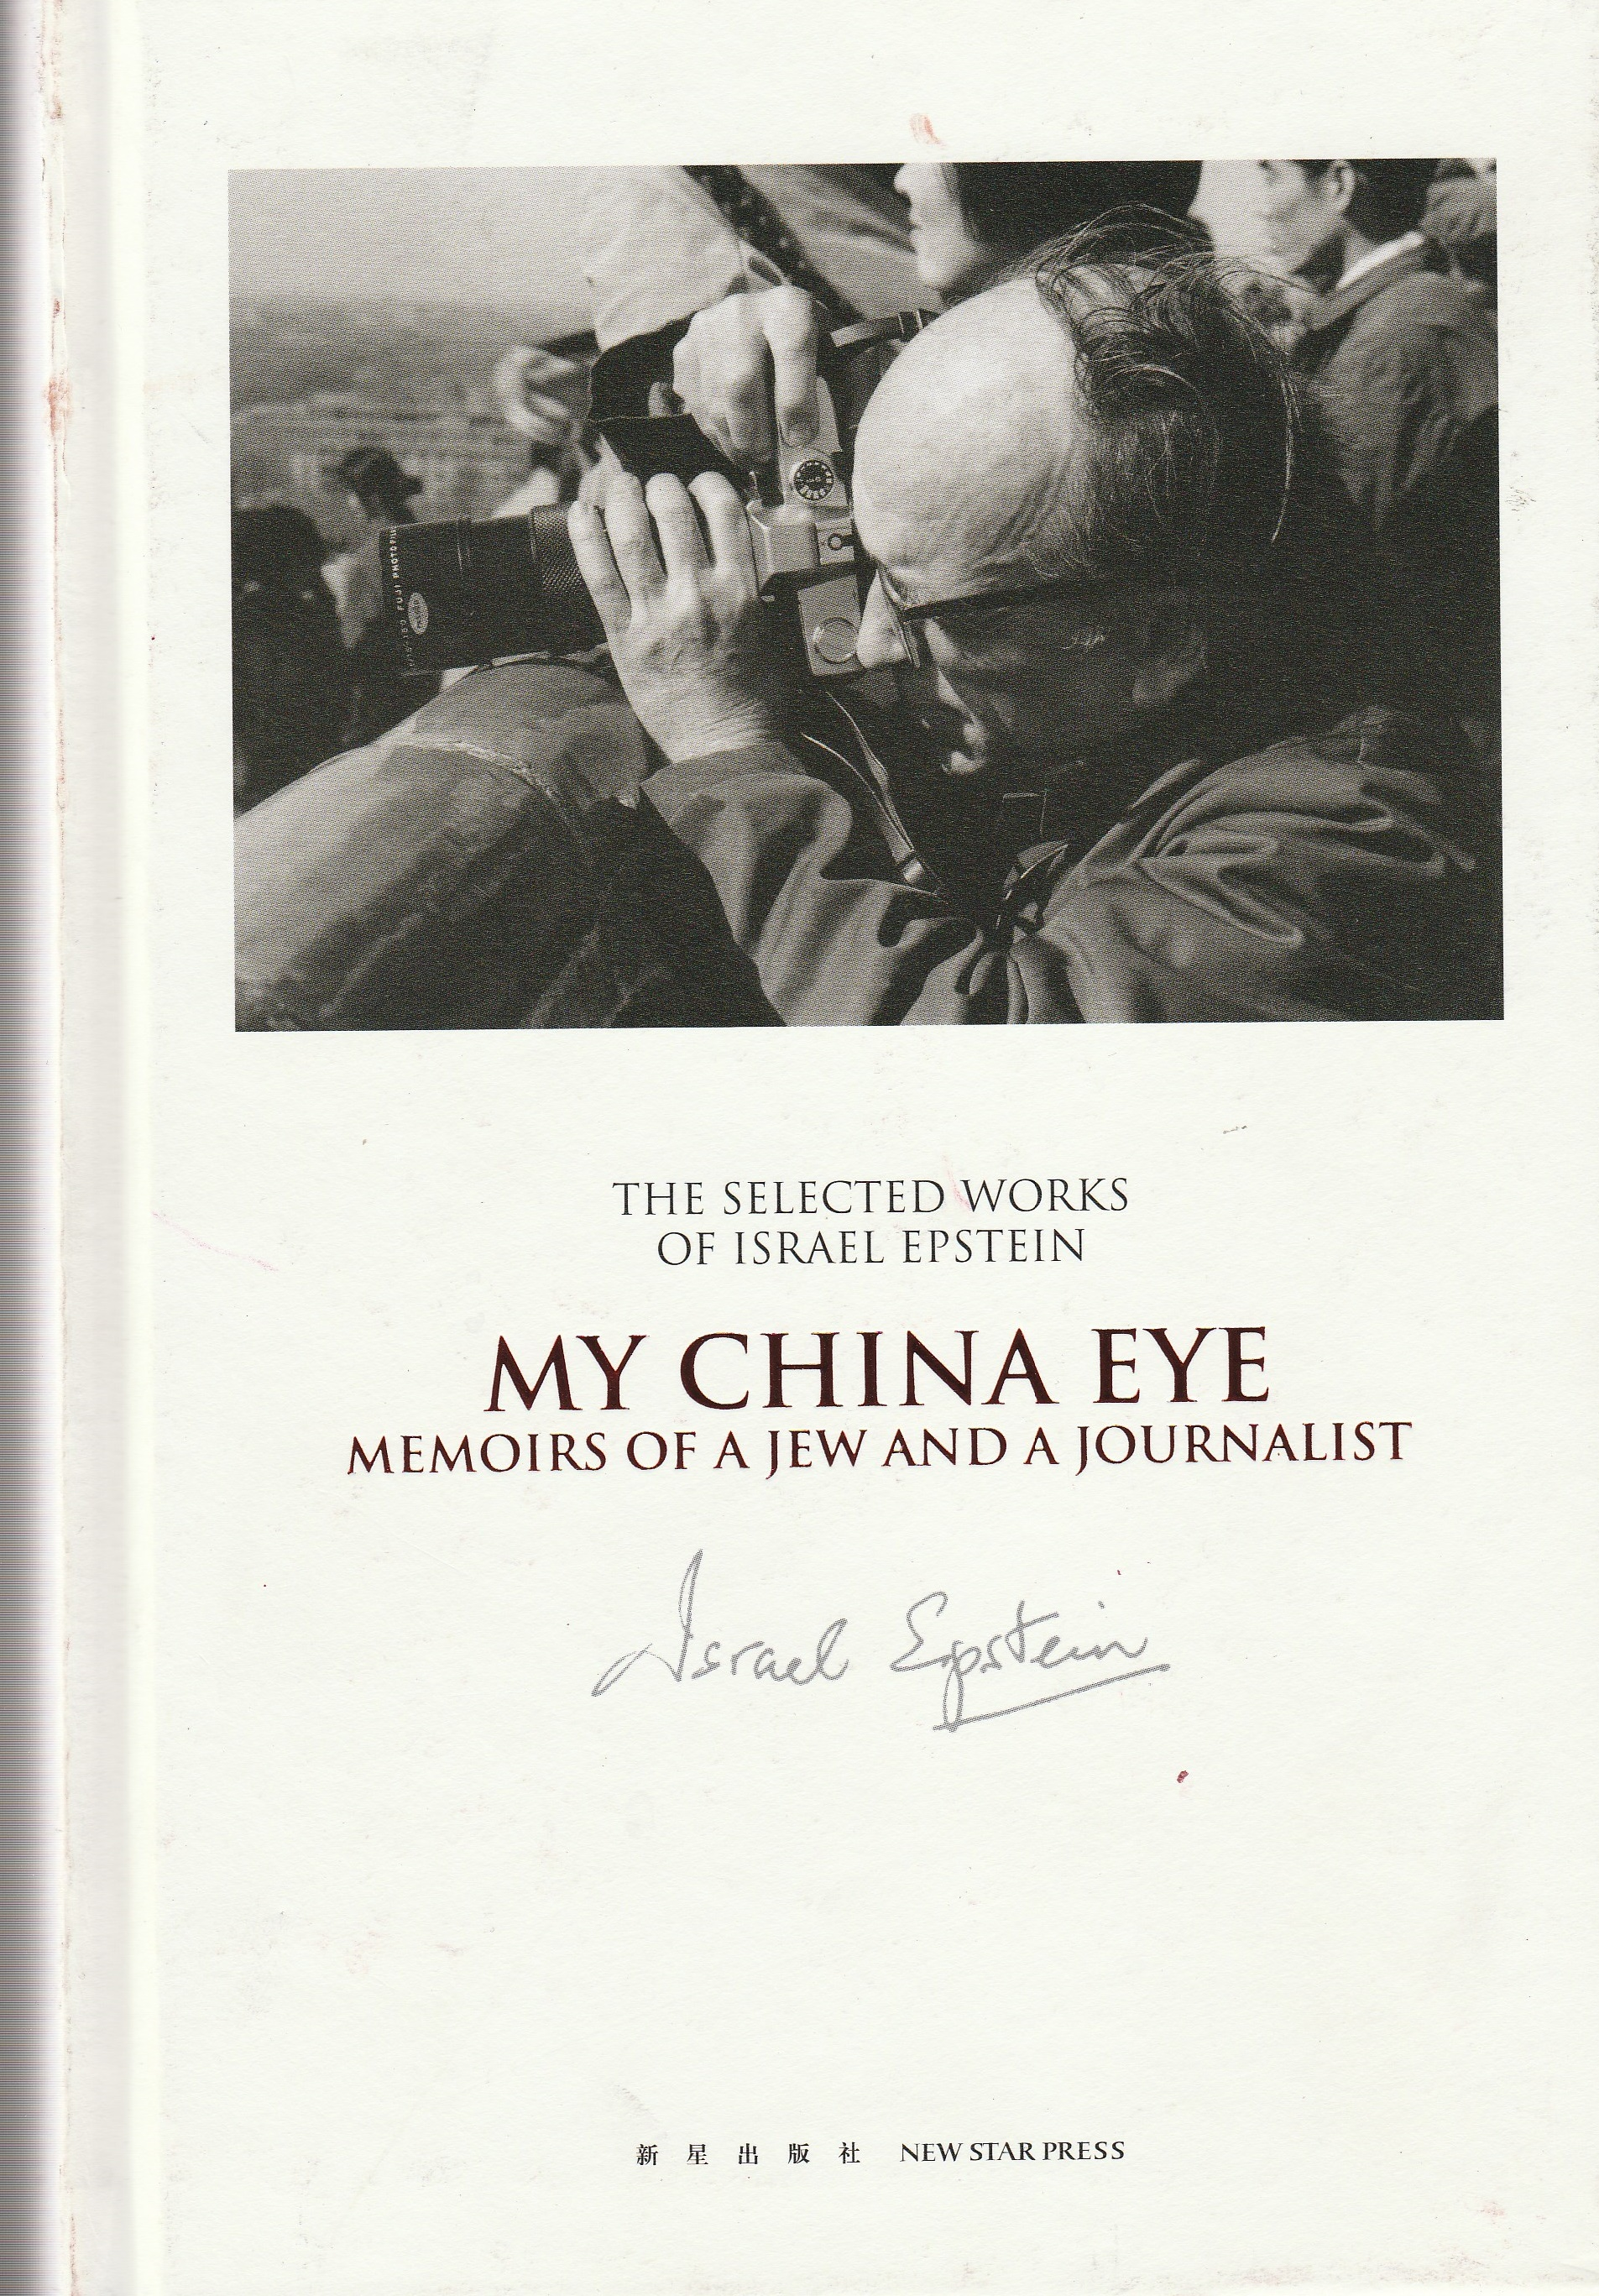 My China Eye: Memories of A Jew and A Journalist